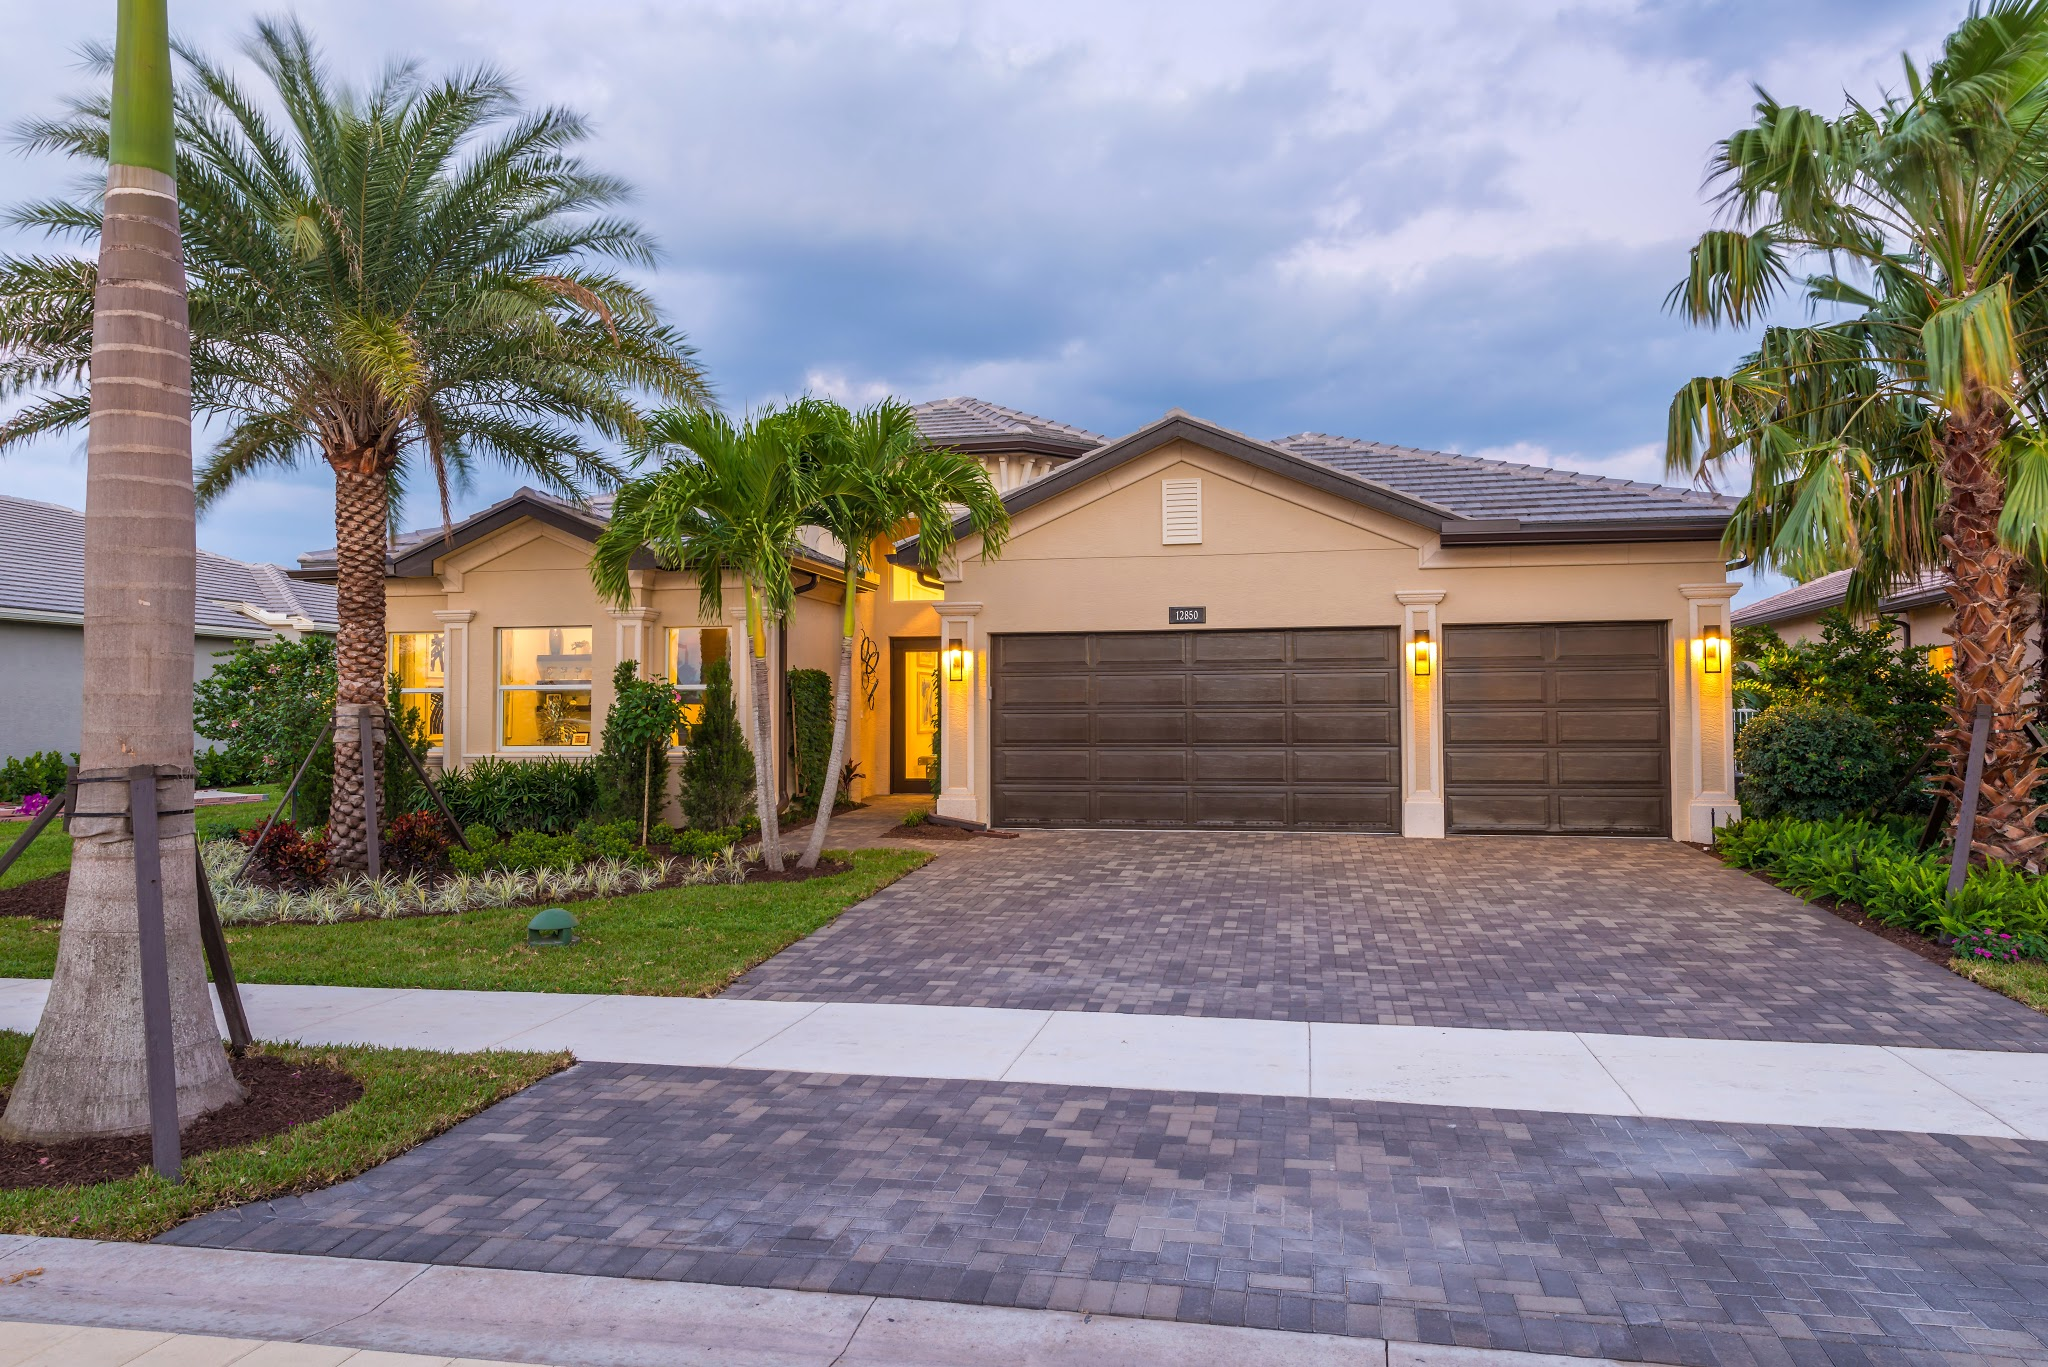 Valencia Bay By Gl Homes In Boynton Beach Fl 33473